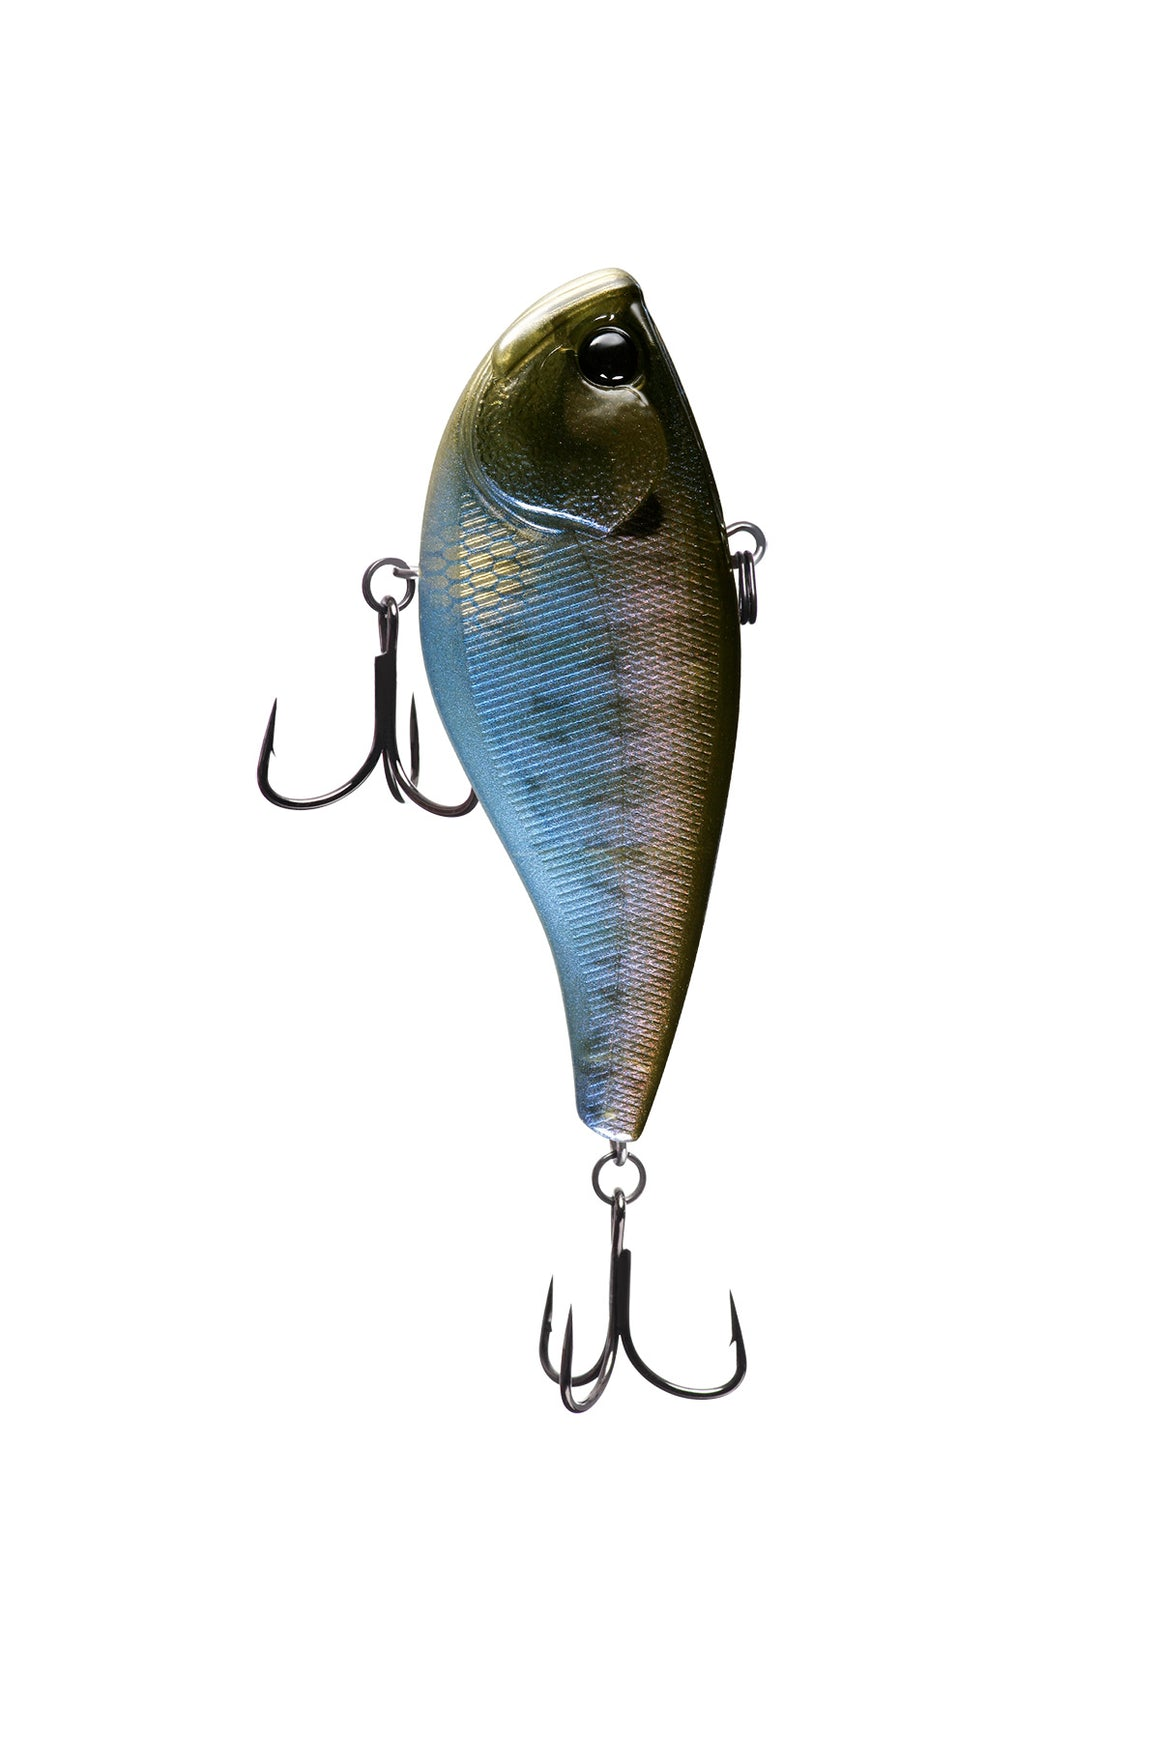 13 Fishing Magic Man Lipless Crankbait - Multi Pitch - Direct Fishing Sales